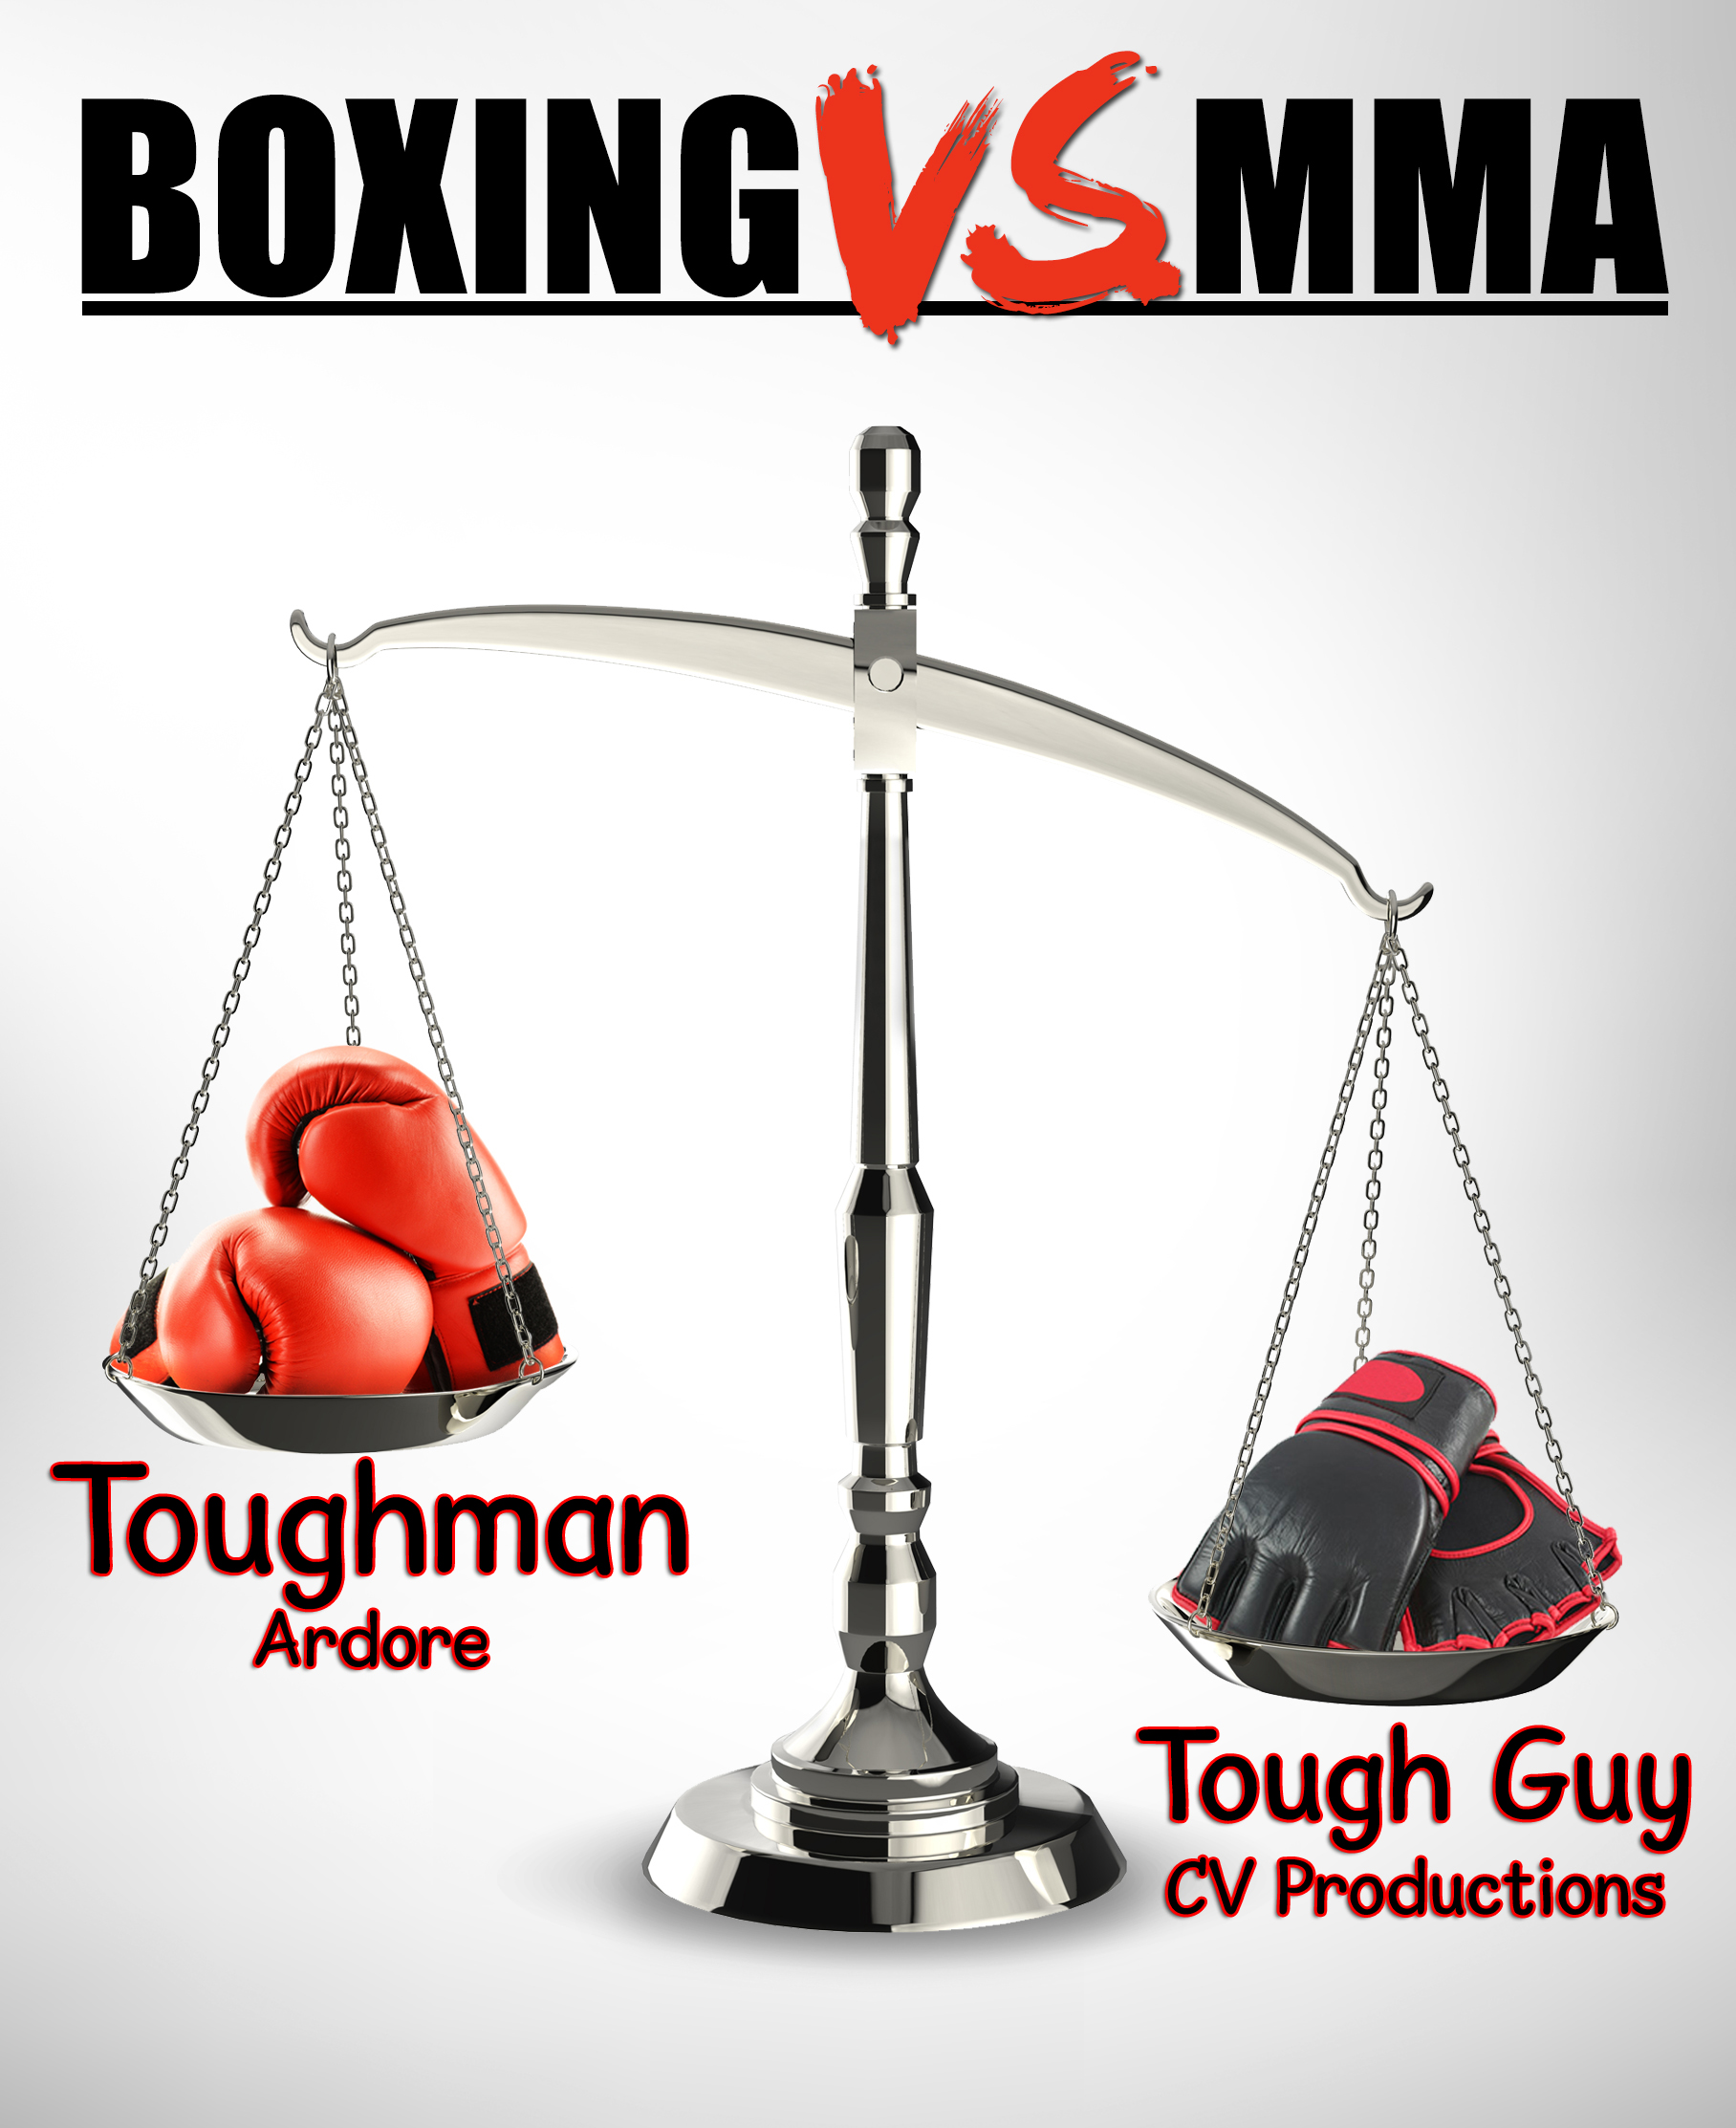 mma vs boxing Boxing vs mma & toughman vs tough guy boxing vs mixed martial arts is a saga that began in 1979.